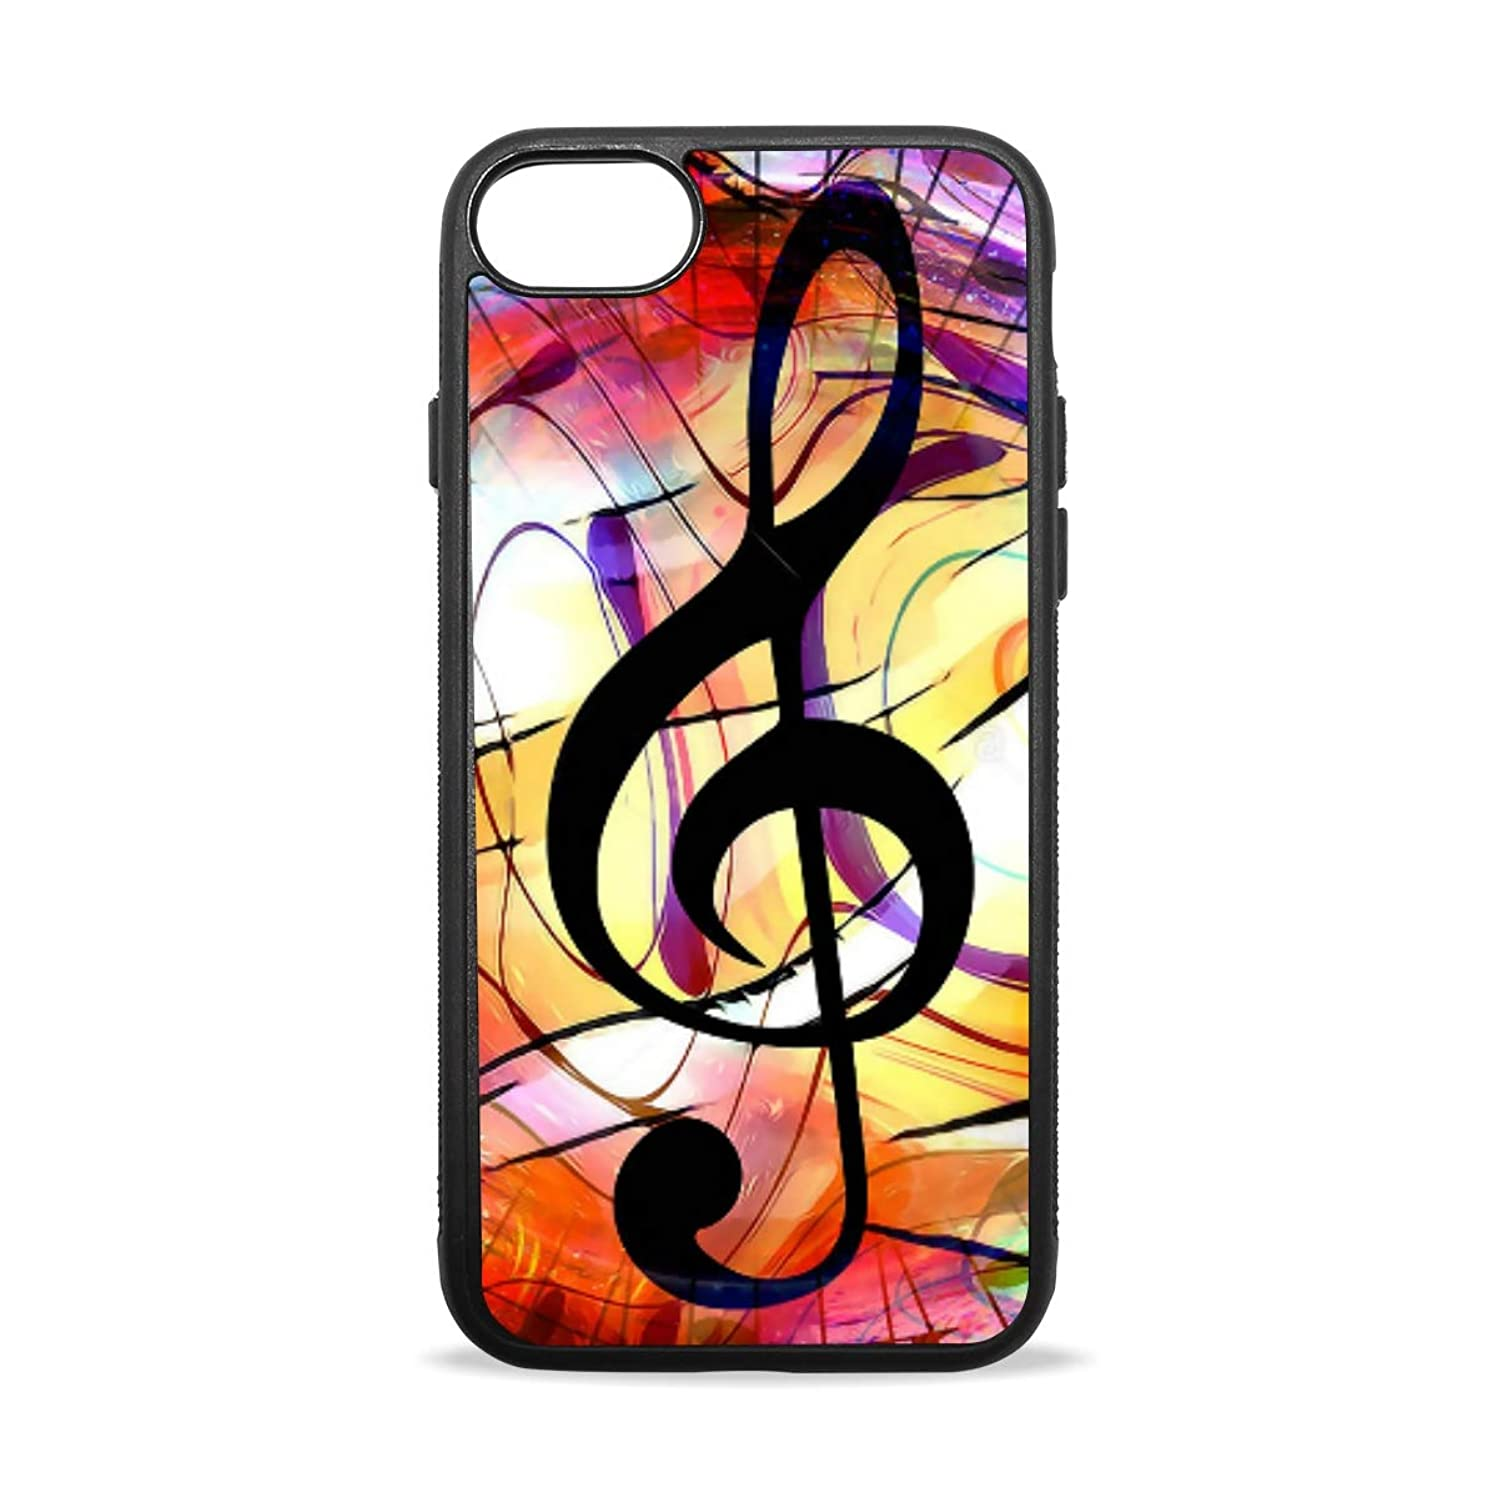 Apple Case Shockproof Slim TPU Protective Cover Couleur Dessin Note Musique Soft Rubber Silicone Cover Phone Case Compatible with iPhone 7/8 iPhone 7/8 Plus [4.7 inch/5.5 inch]